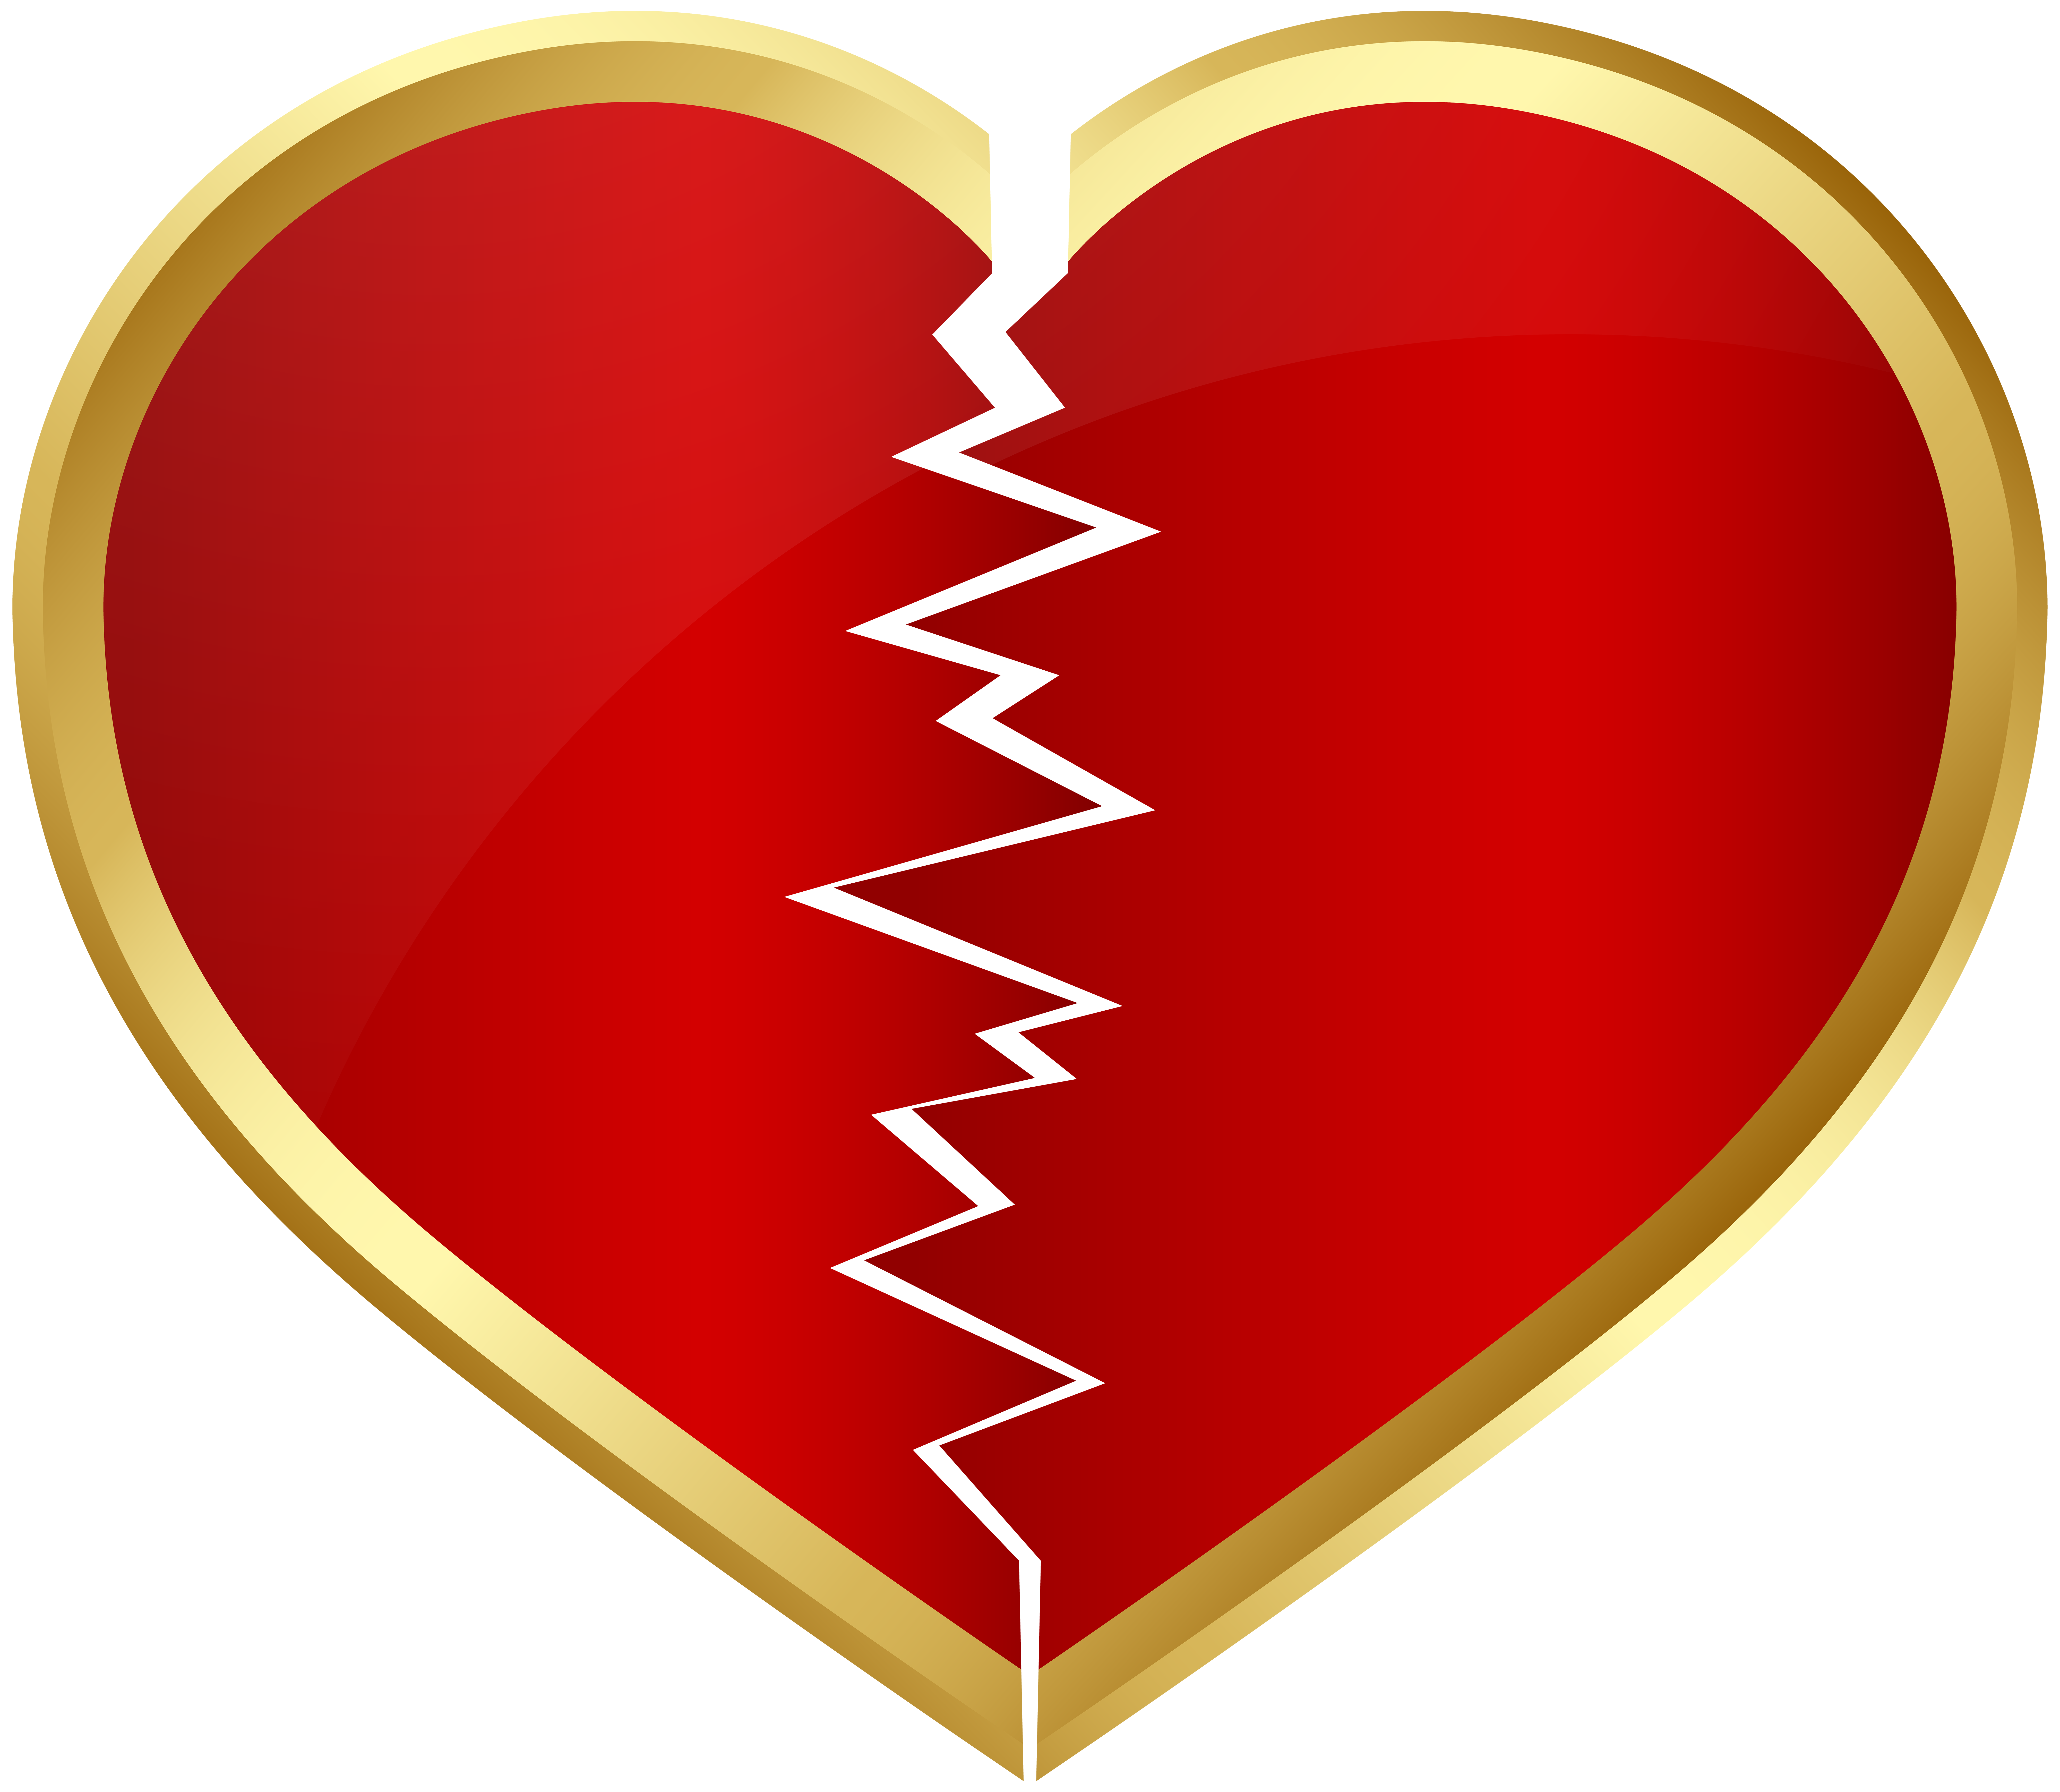 Broken Heart Transparent Clip Art Image.